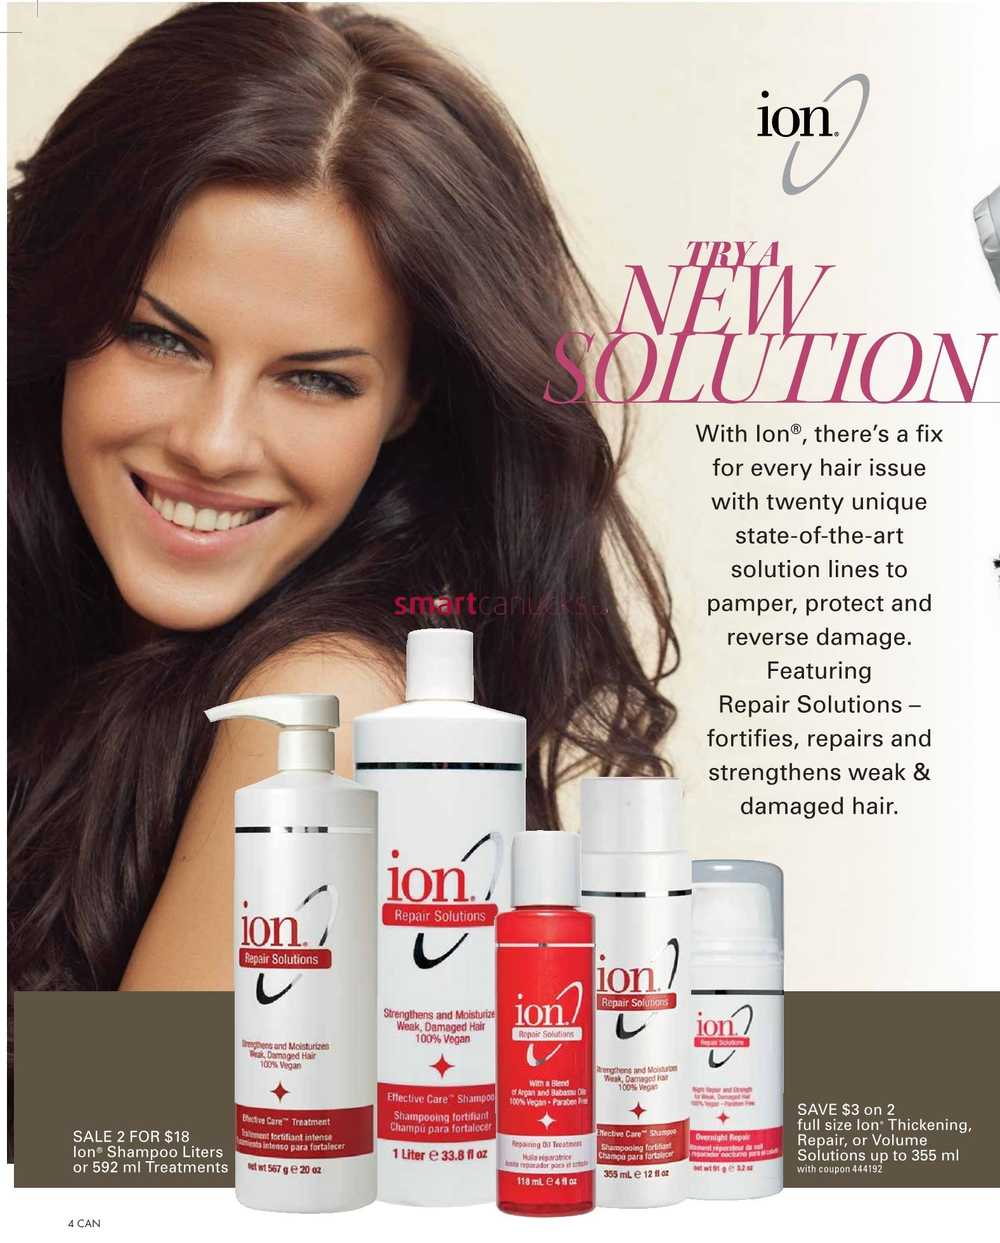 View the current sally beauty supply flyer to save on all products offerted by sally beauty supply! Sally Beauty Supply Flyer Online – Canadian Store Flyers Your favorite online flyers, your favorite flyer, updated regularly for you to browse easily.